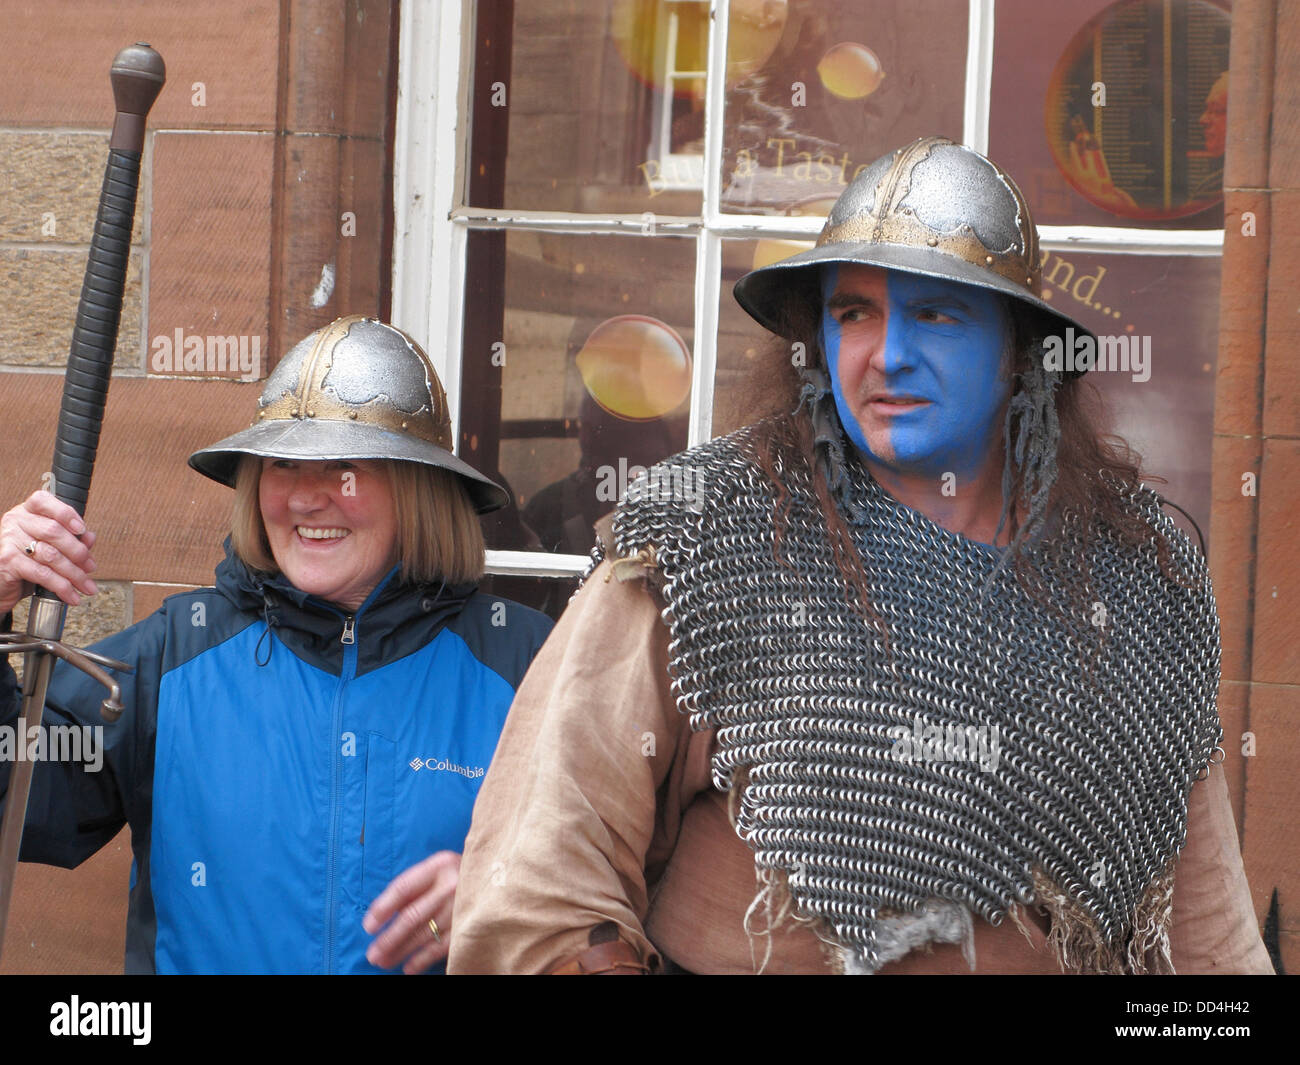 Street Actor on Castlehill, Edinburgh as Scottish Medieval Soldier during Edinburgh Fringe Festival, Scotland, UK - Stock Image